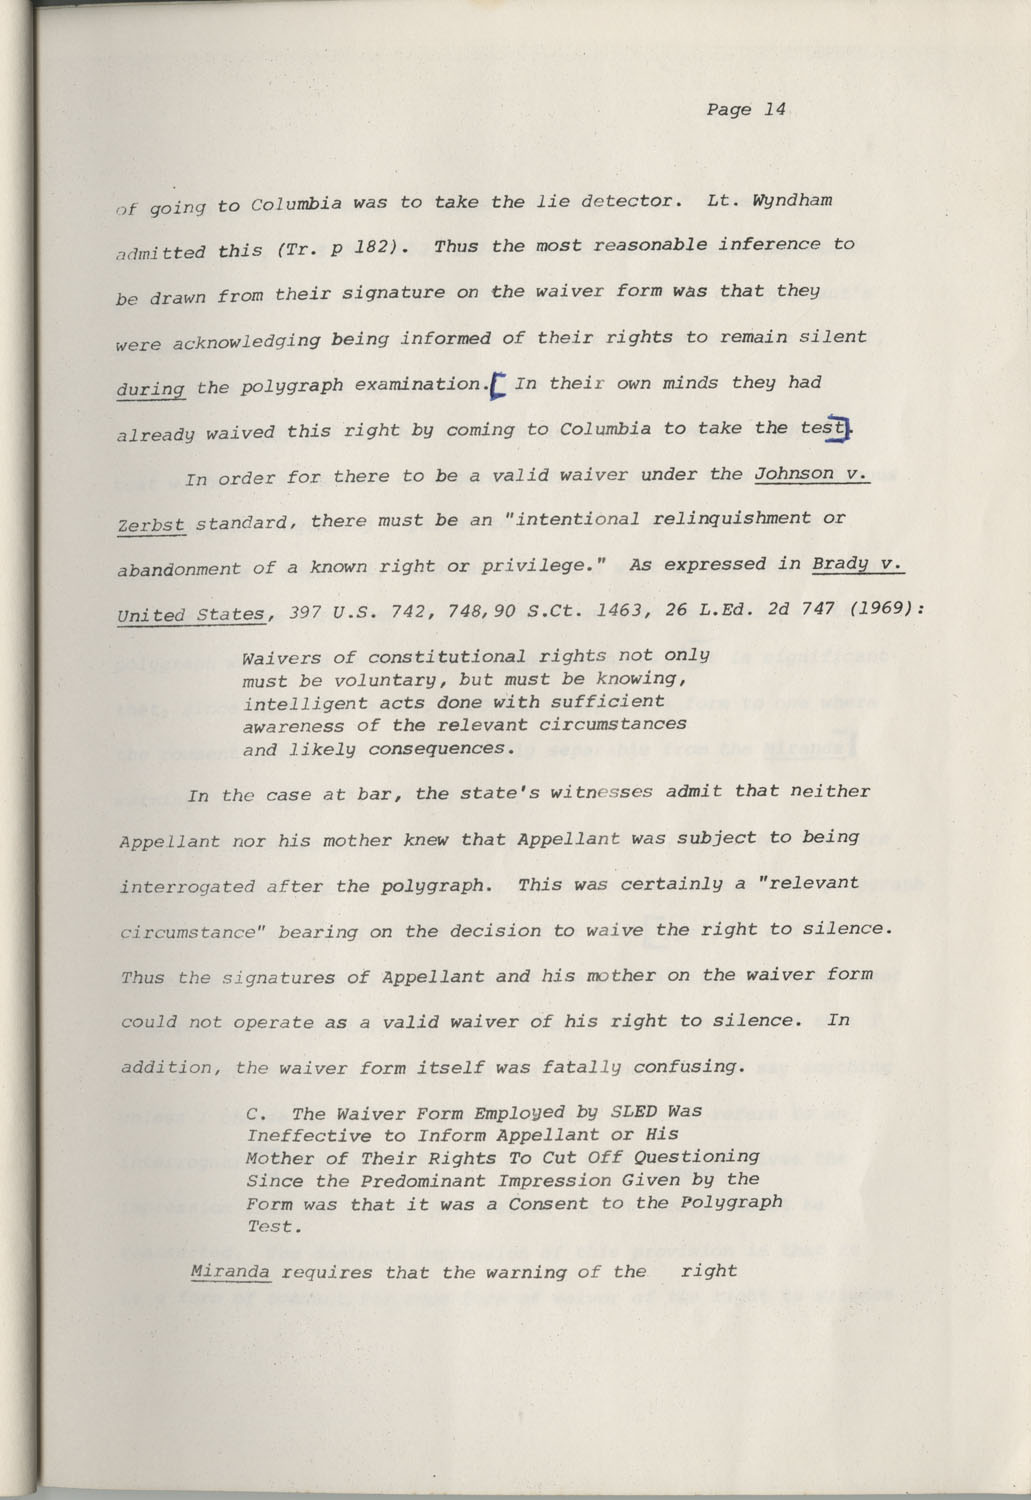 State of South Carolina vs. Robert Lee Smith, Brief of Appellant, Page 14